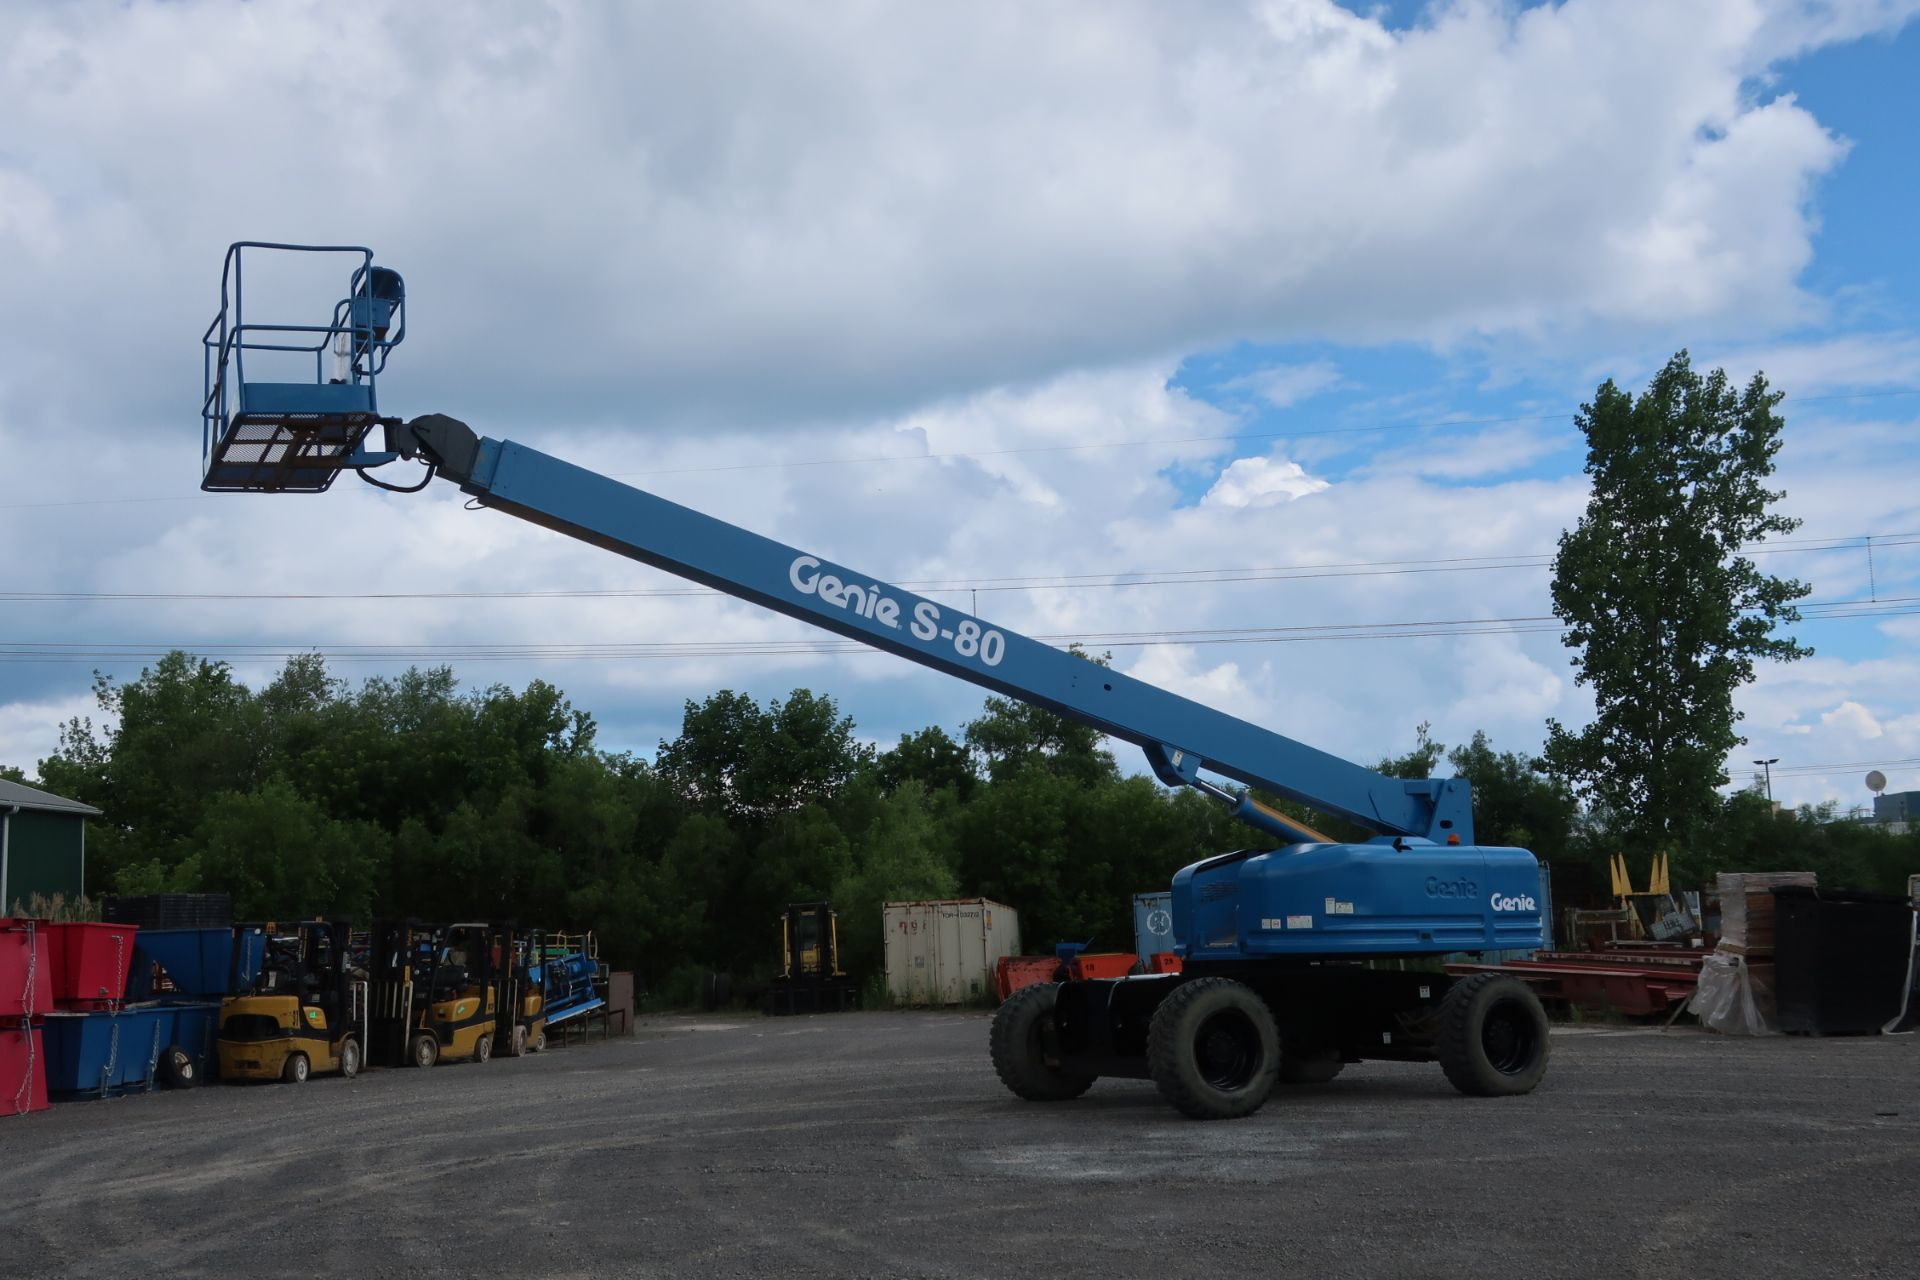 Lot 1 - MINT Genie Zoom Boom Lift model S80 with 80' height 4x4 with extendable axles and LOW HOURS